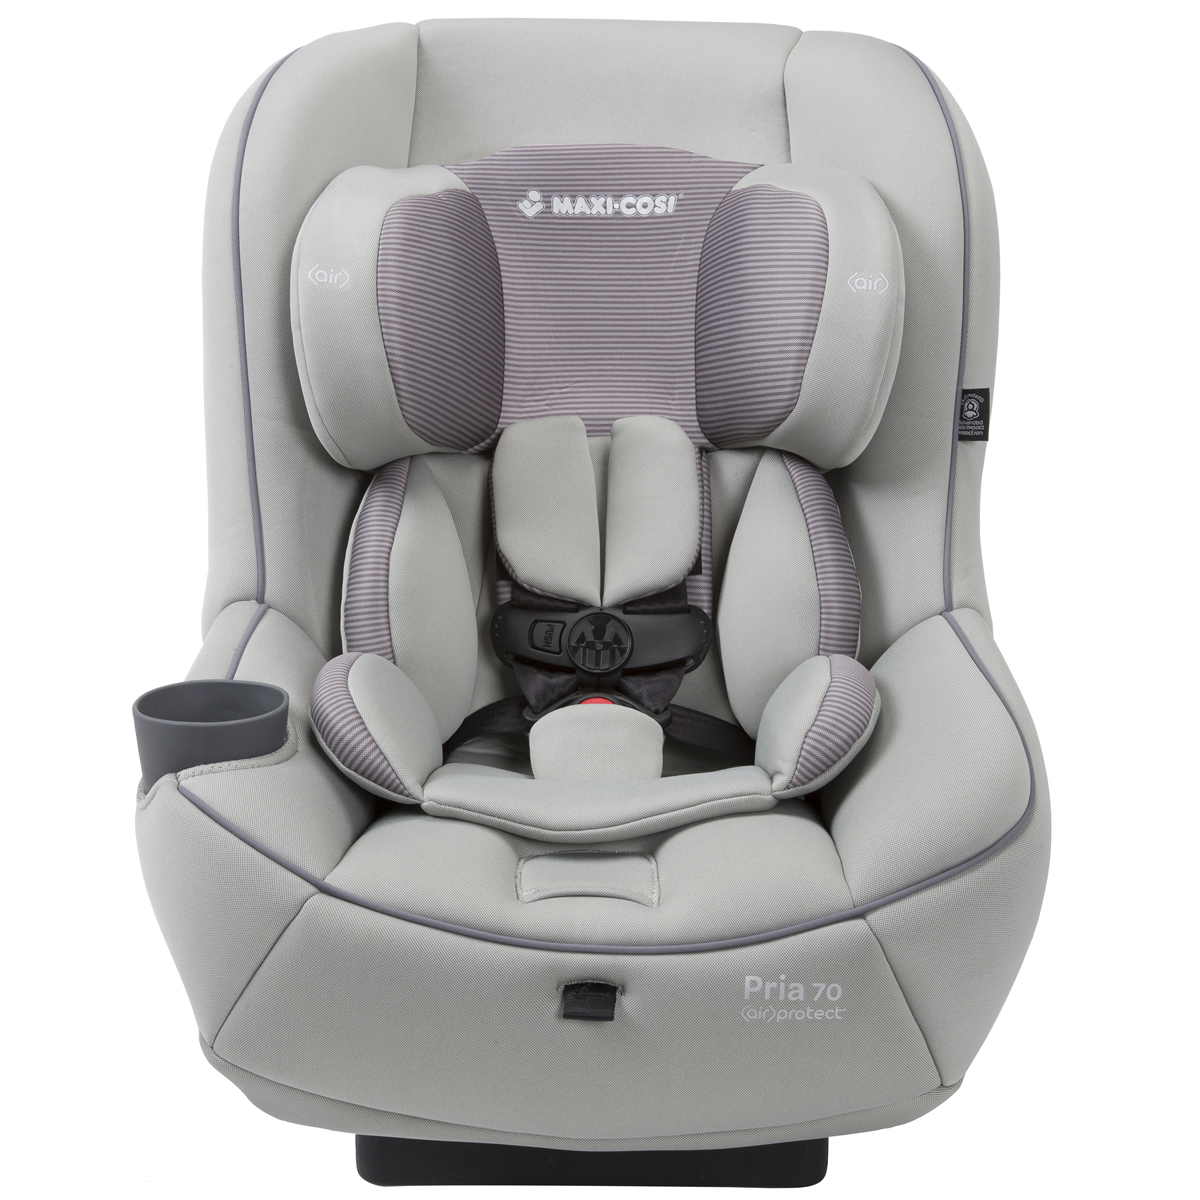 MAXI-COSI Pria 70 Convertible Car Seat - Grey Gravel